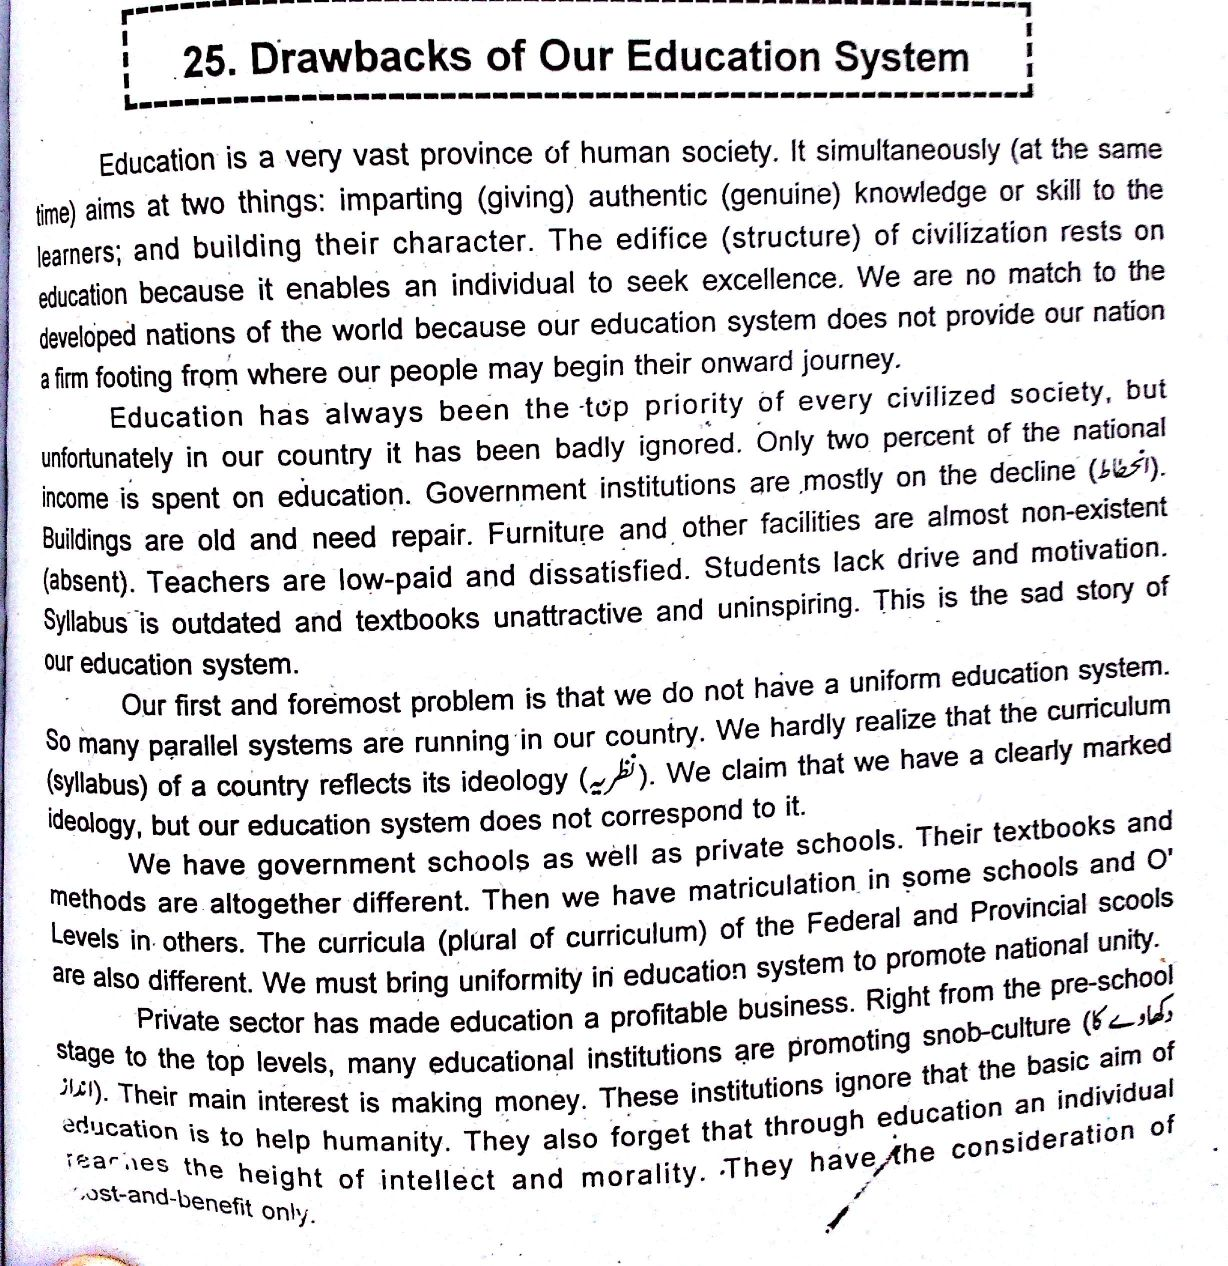 essay on drawbacks of education system Co-education is a system of educating boys and girls together in ancient times, co-education was prevalent in greece home.